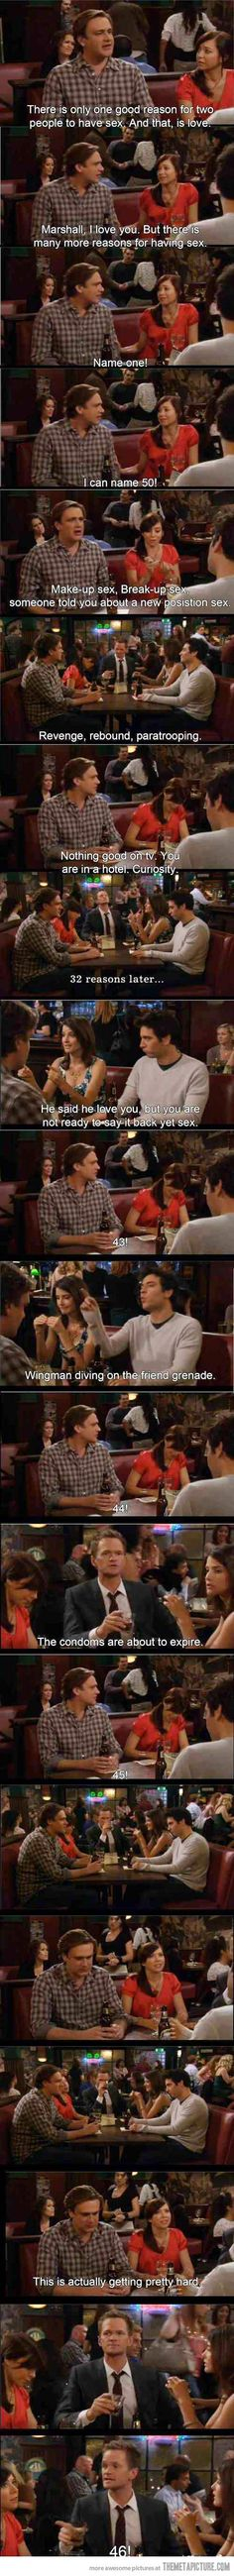 How I Met Your Mother I've only seen a couple episodes of this show and this is one of them pretty funny :)